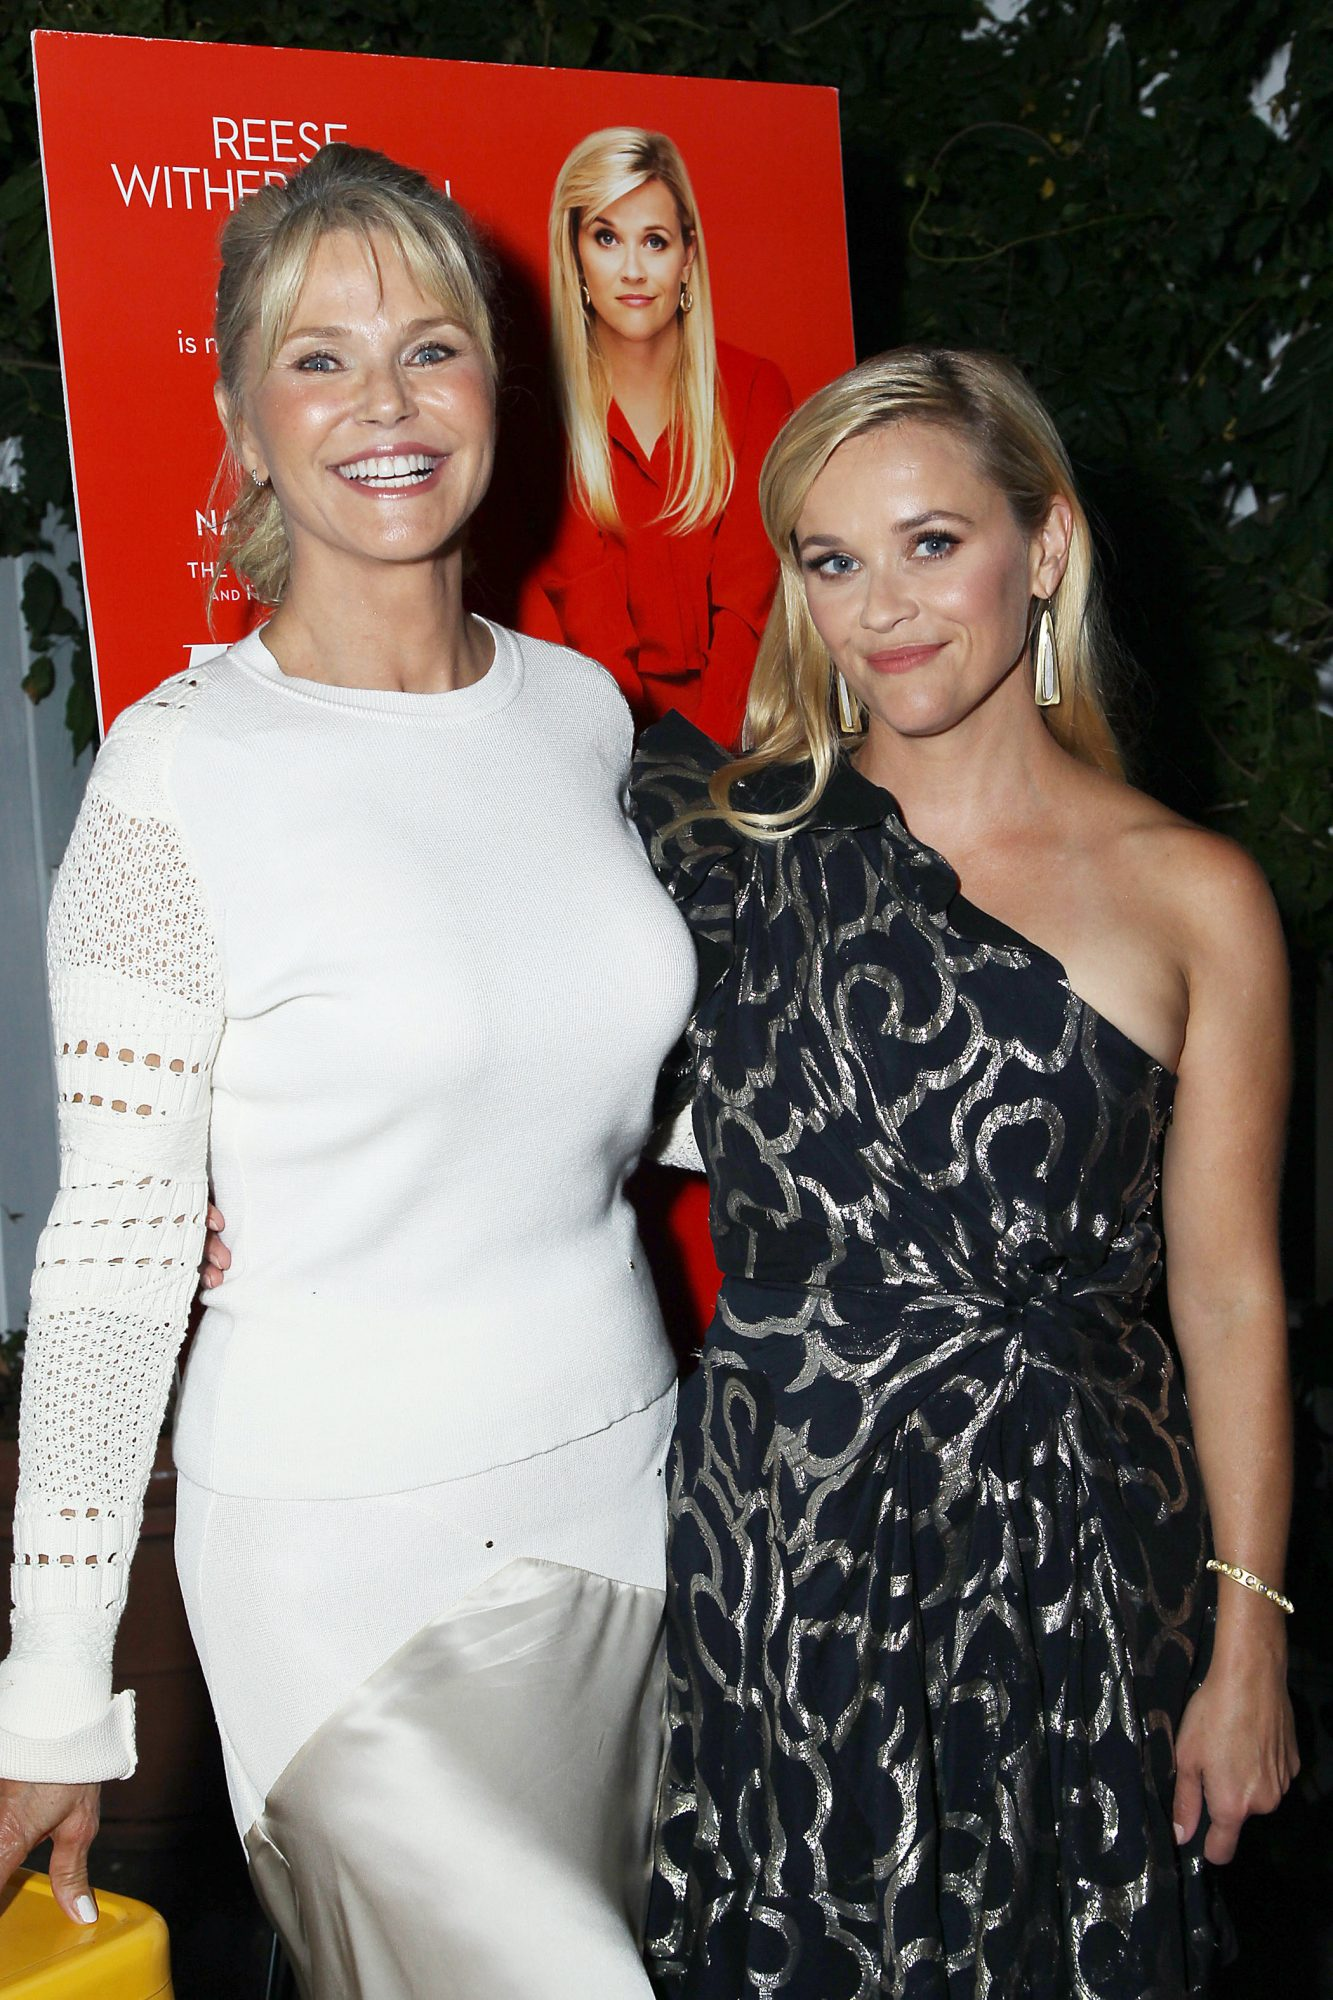 Christie Brinkley and Reese Witherspoon